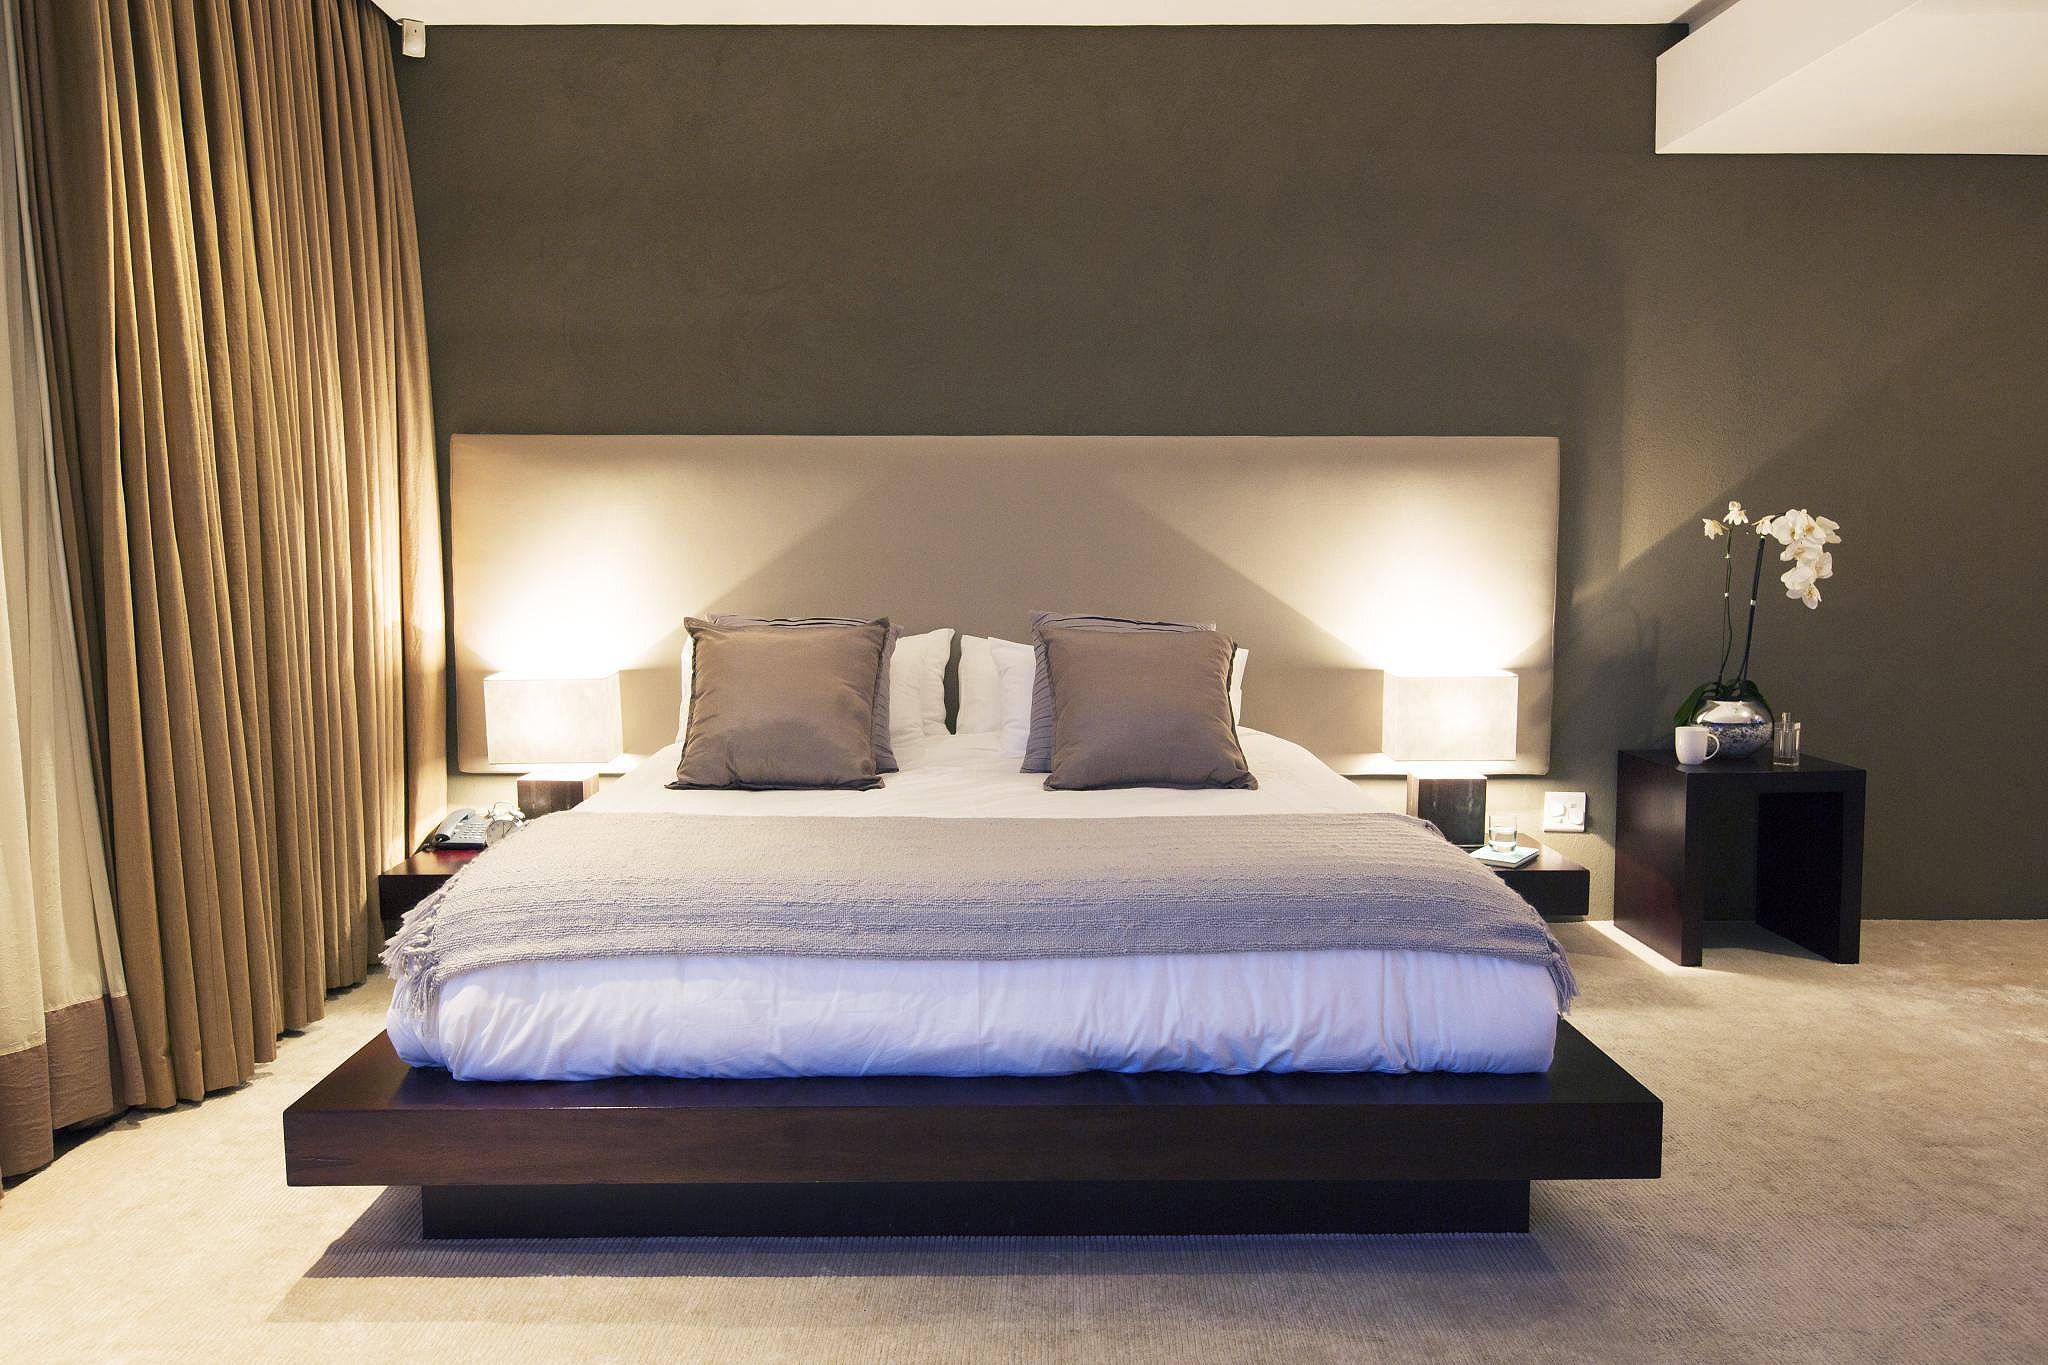 Twin, Queen or King: What's The Right Size Bed Right for You?